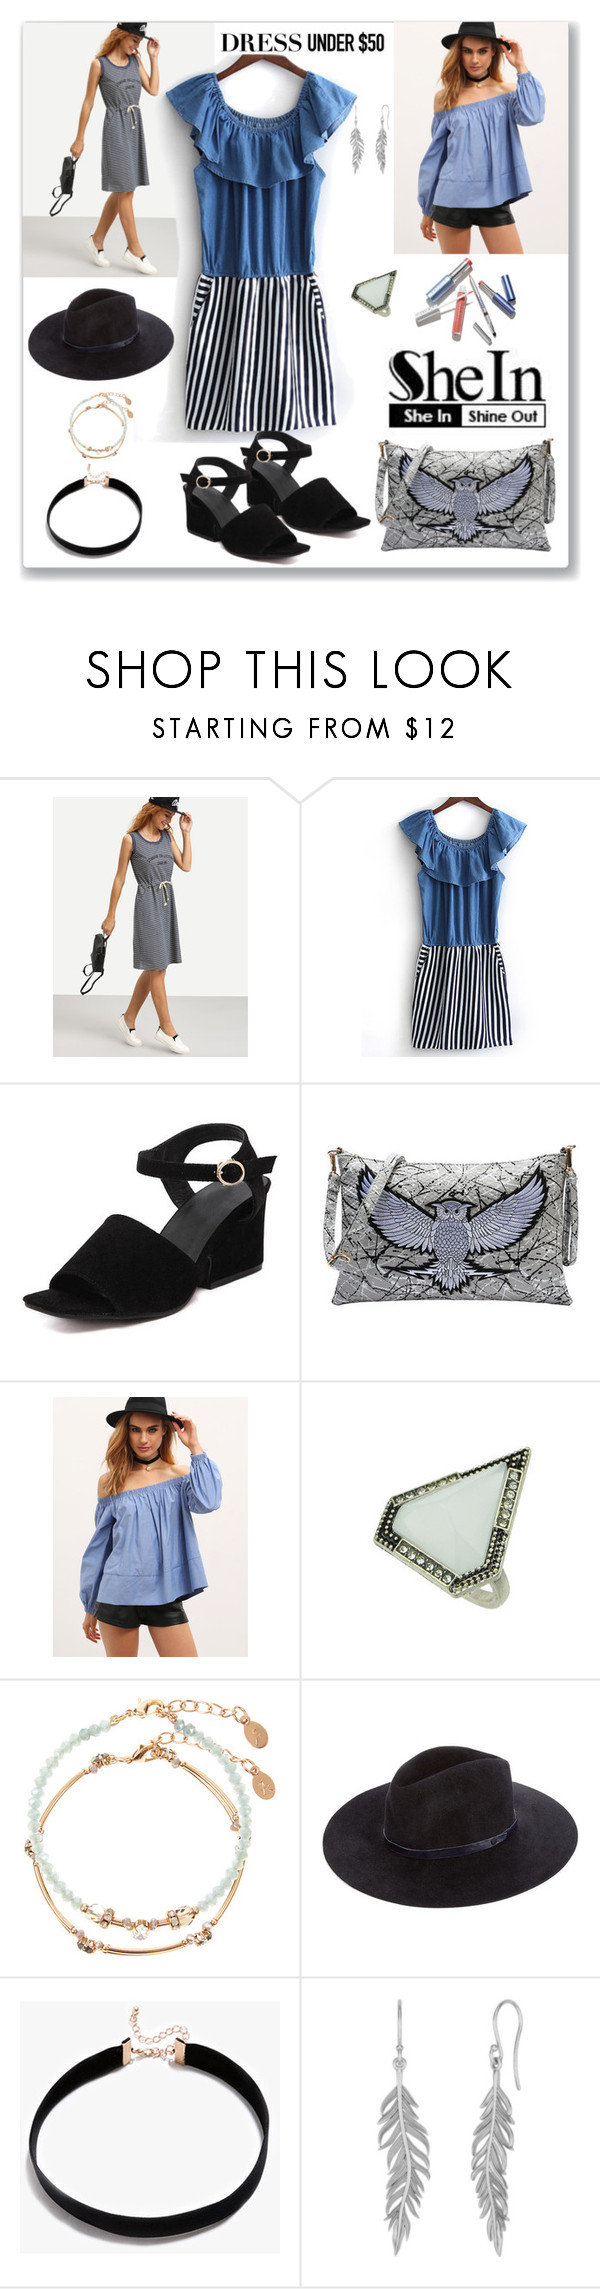 """Shein Dress"" by ludmyla-stoyan ❤ liked on Polyvore featuring Accessorize, rag & bone, dress, hat, ruffle, choker and shein"